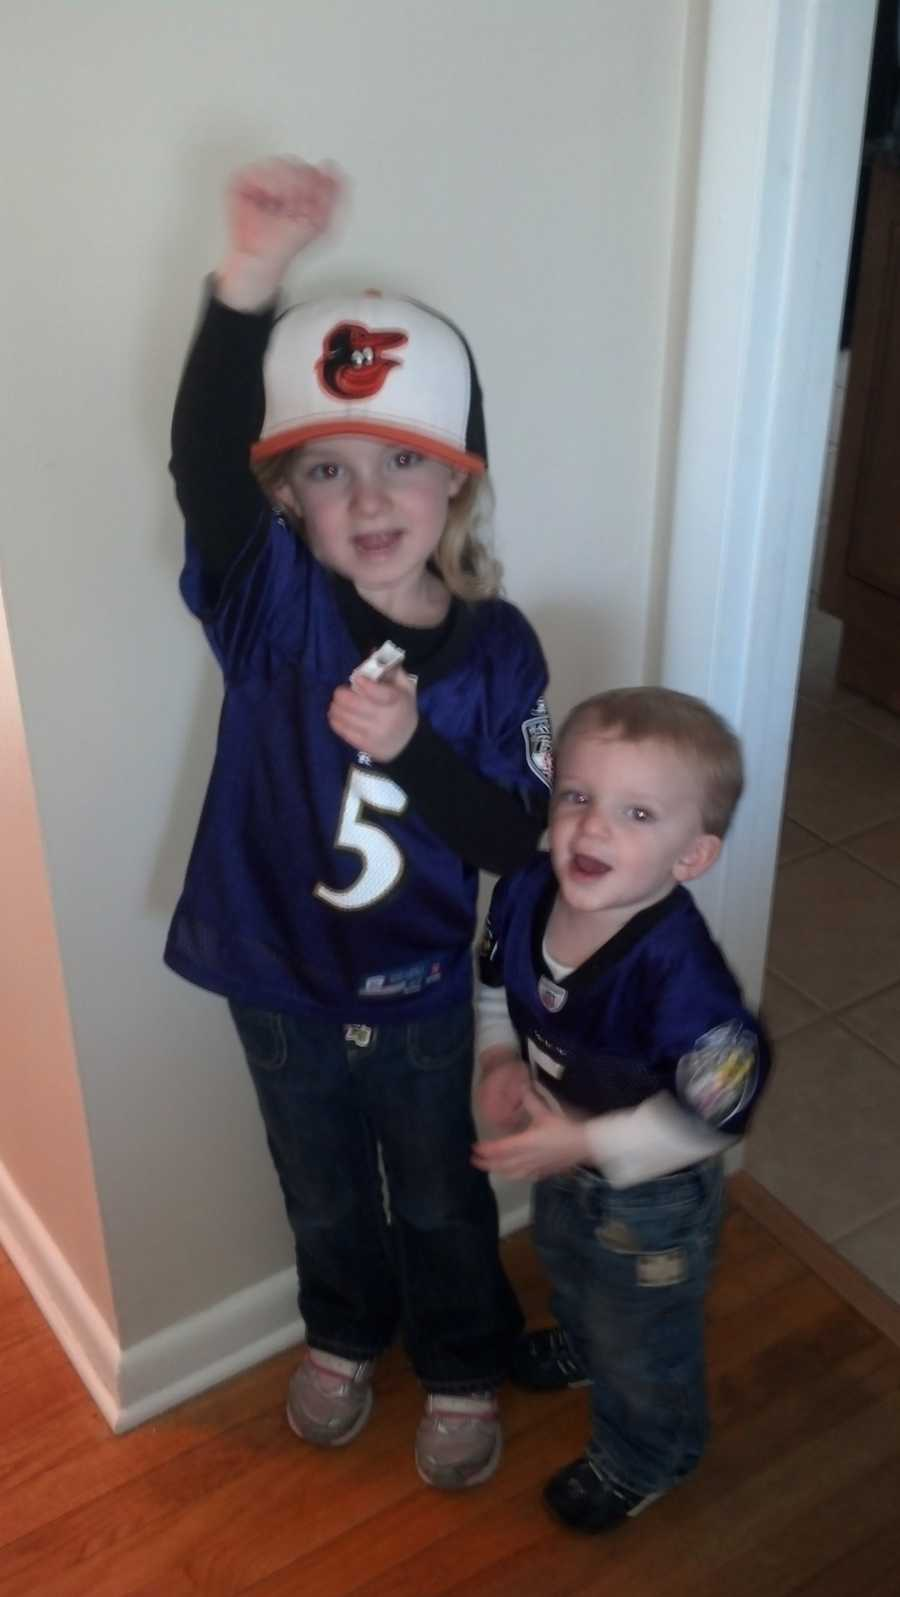 Anna and James are ready to root on the Ravens from Bel Air!